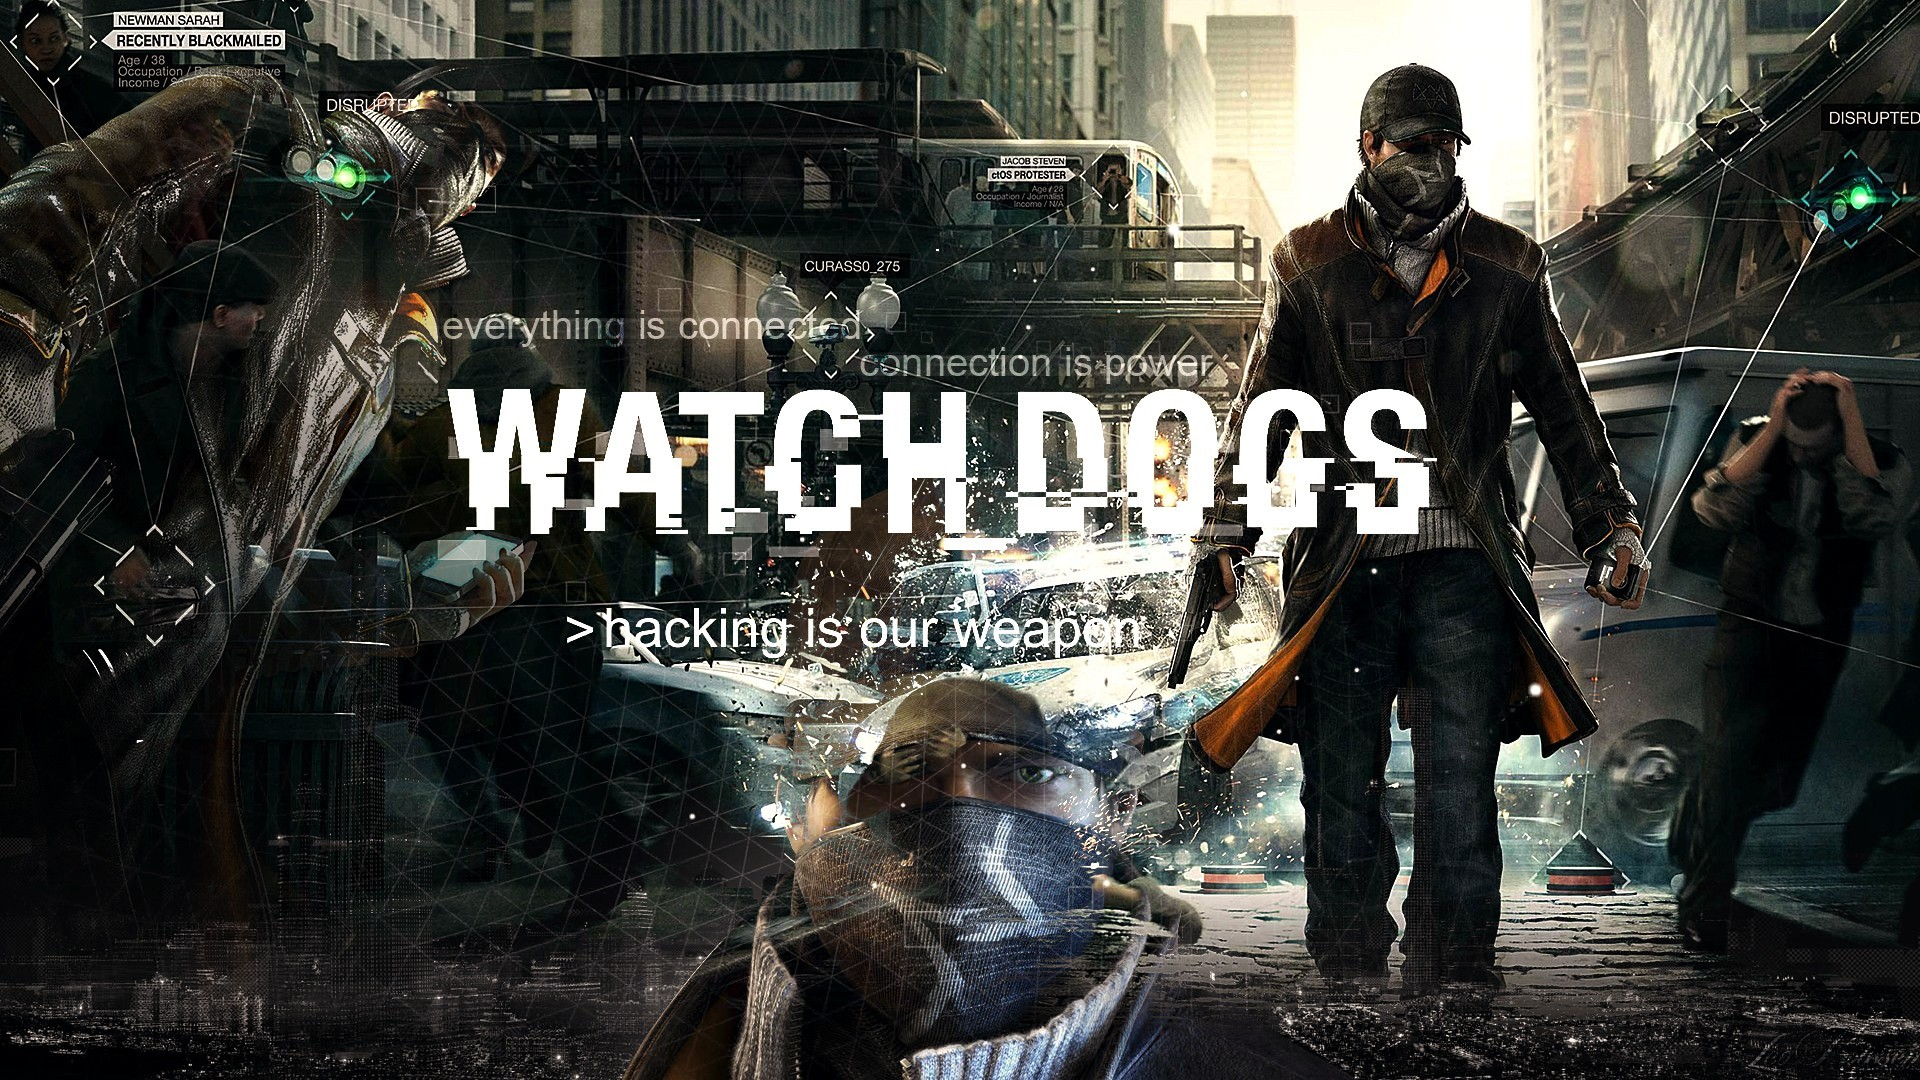 How to Fixed Watch Dogs No Audio Problem